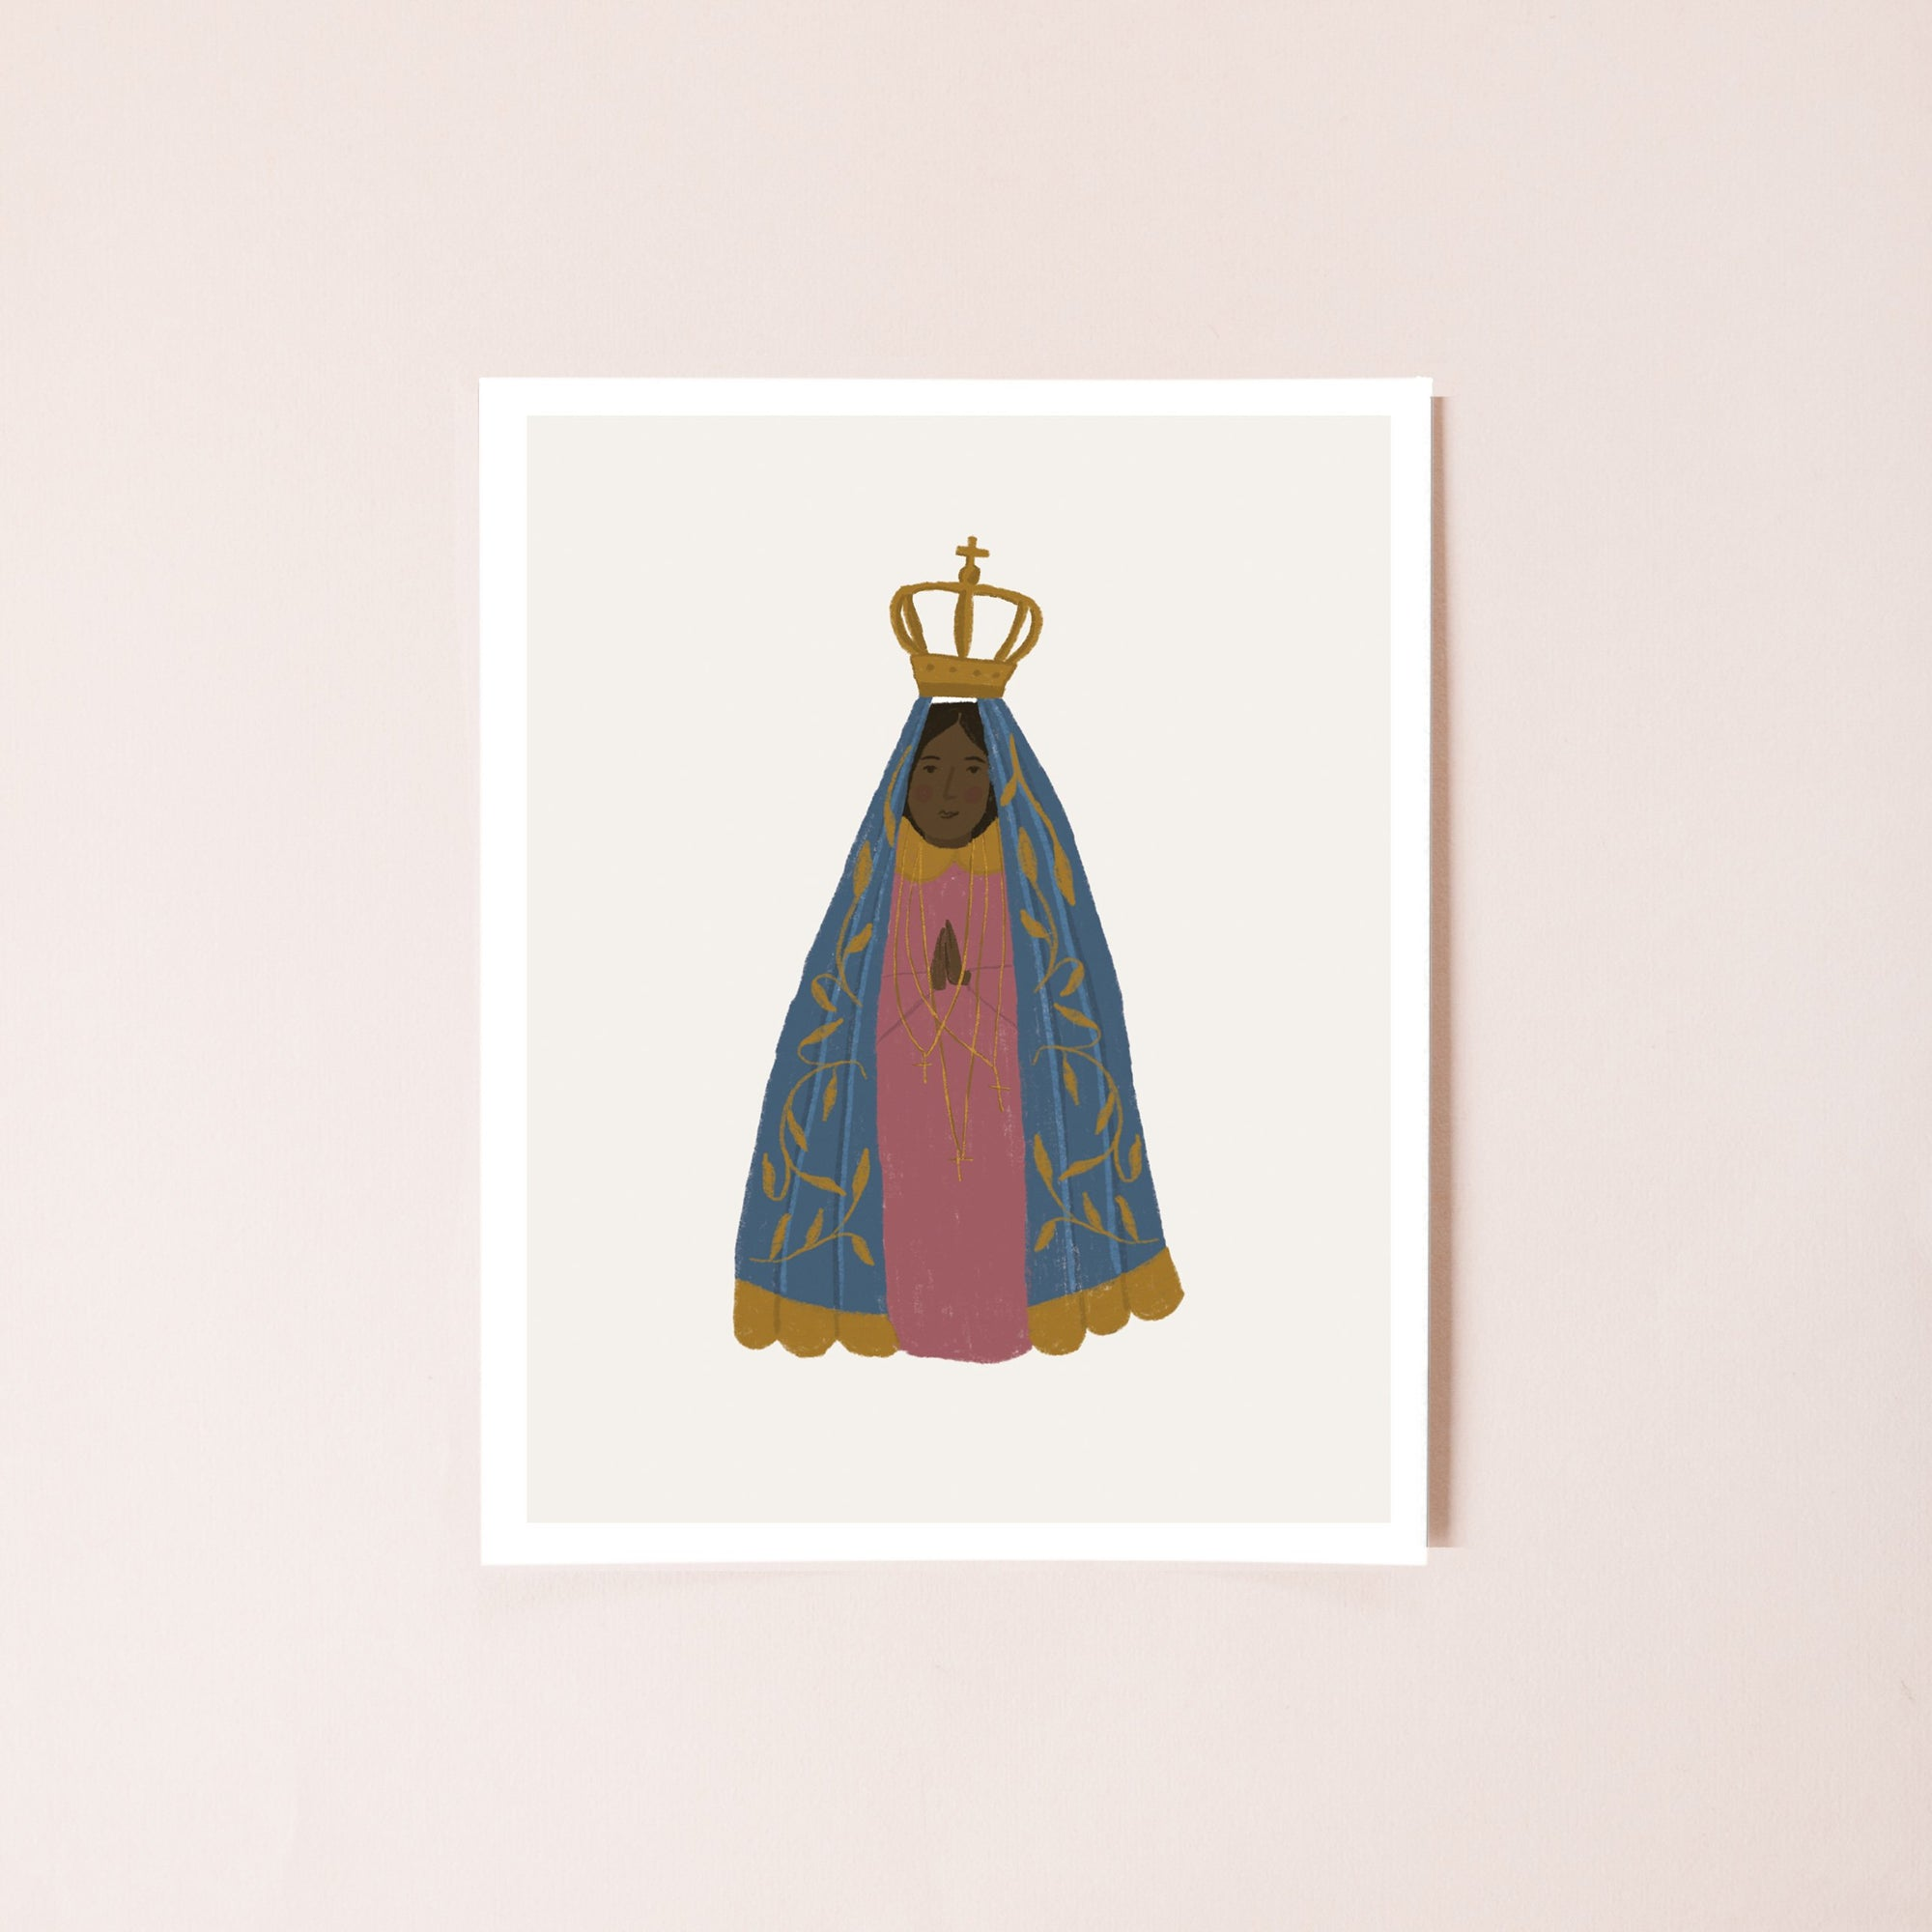 Our Lady of Aparecida 8x10 Print